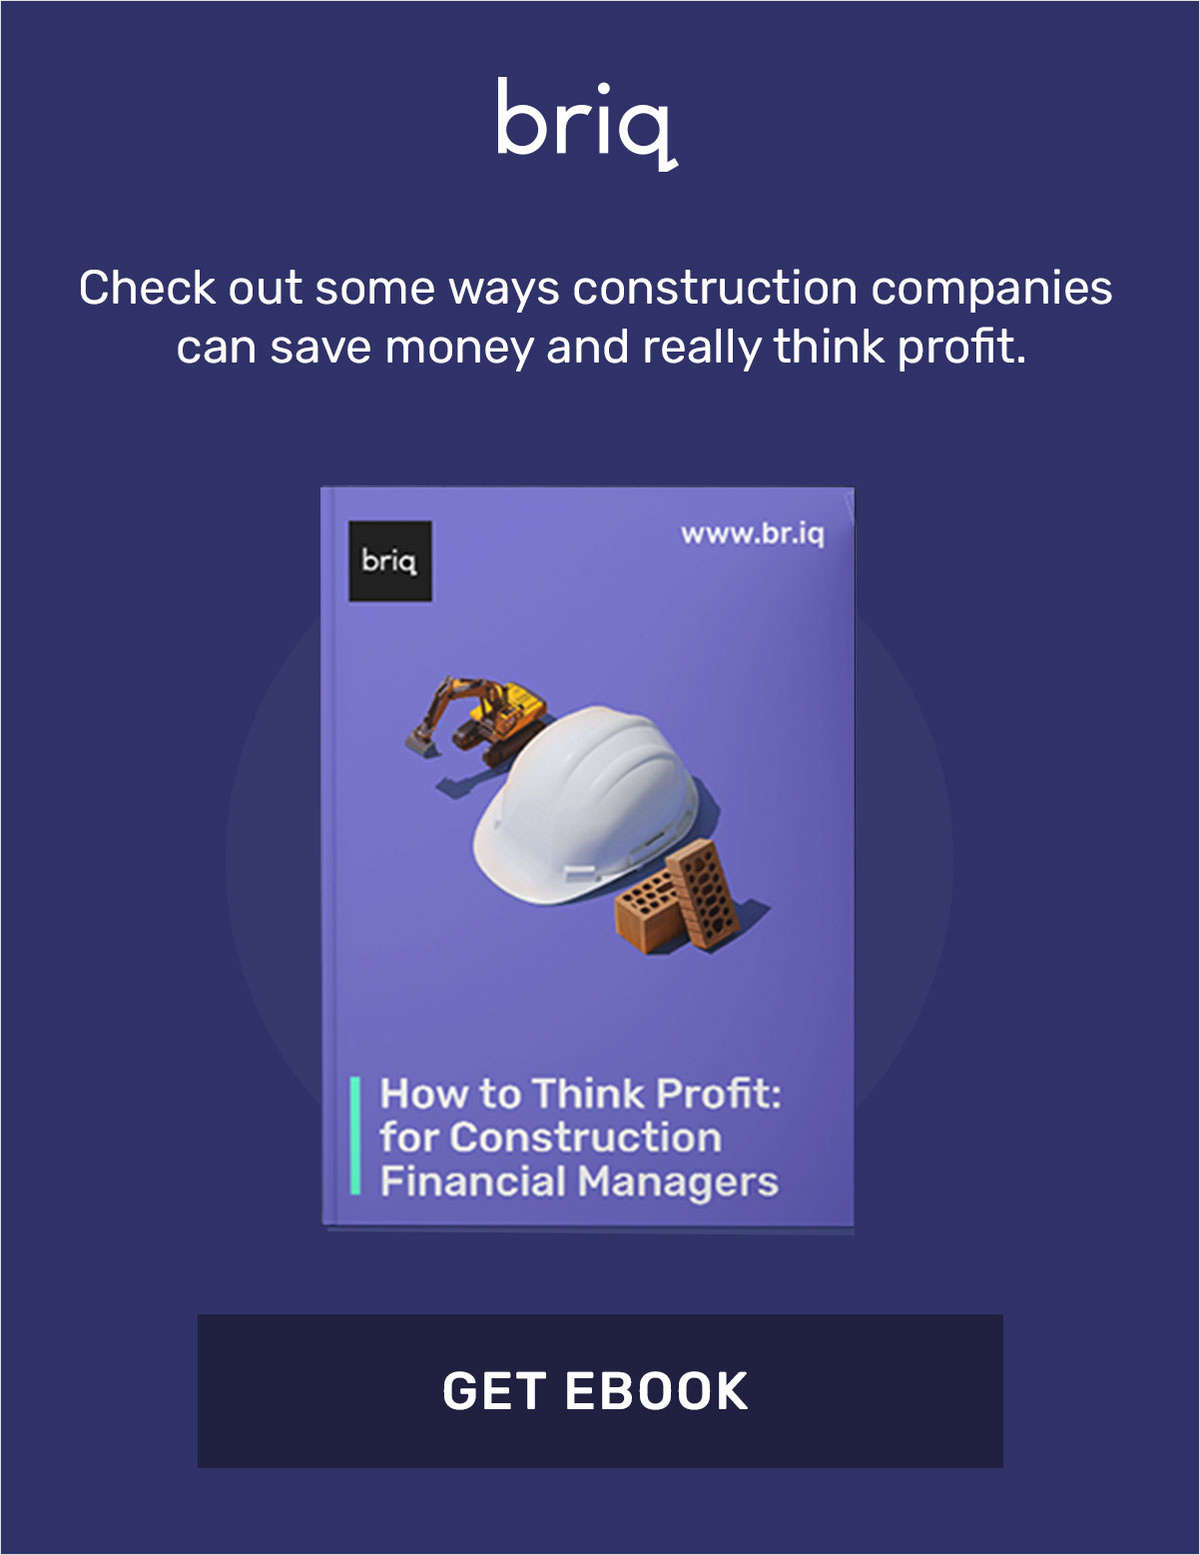 How to Think Profit: for Construction Financial Managers